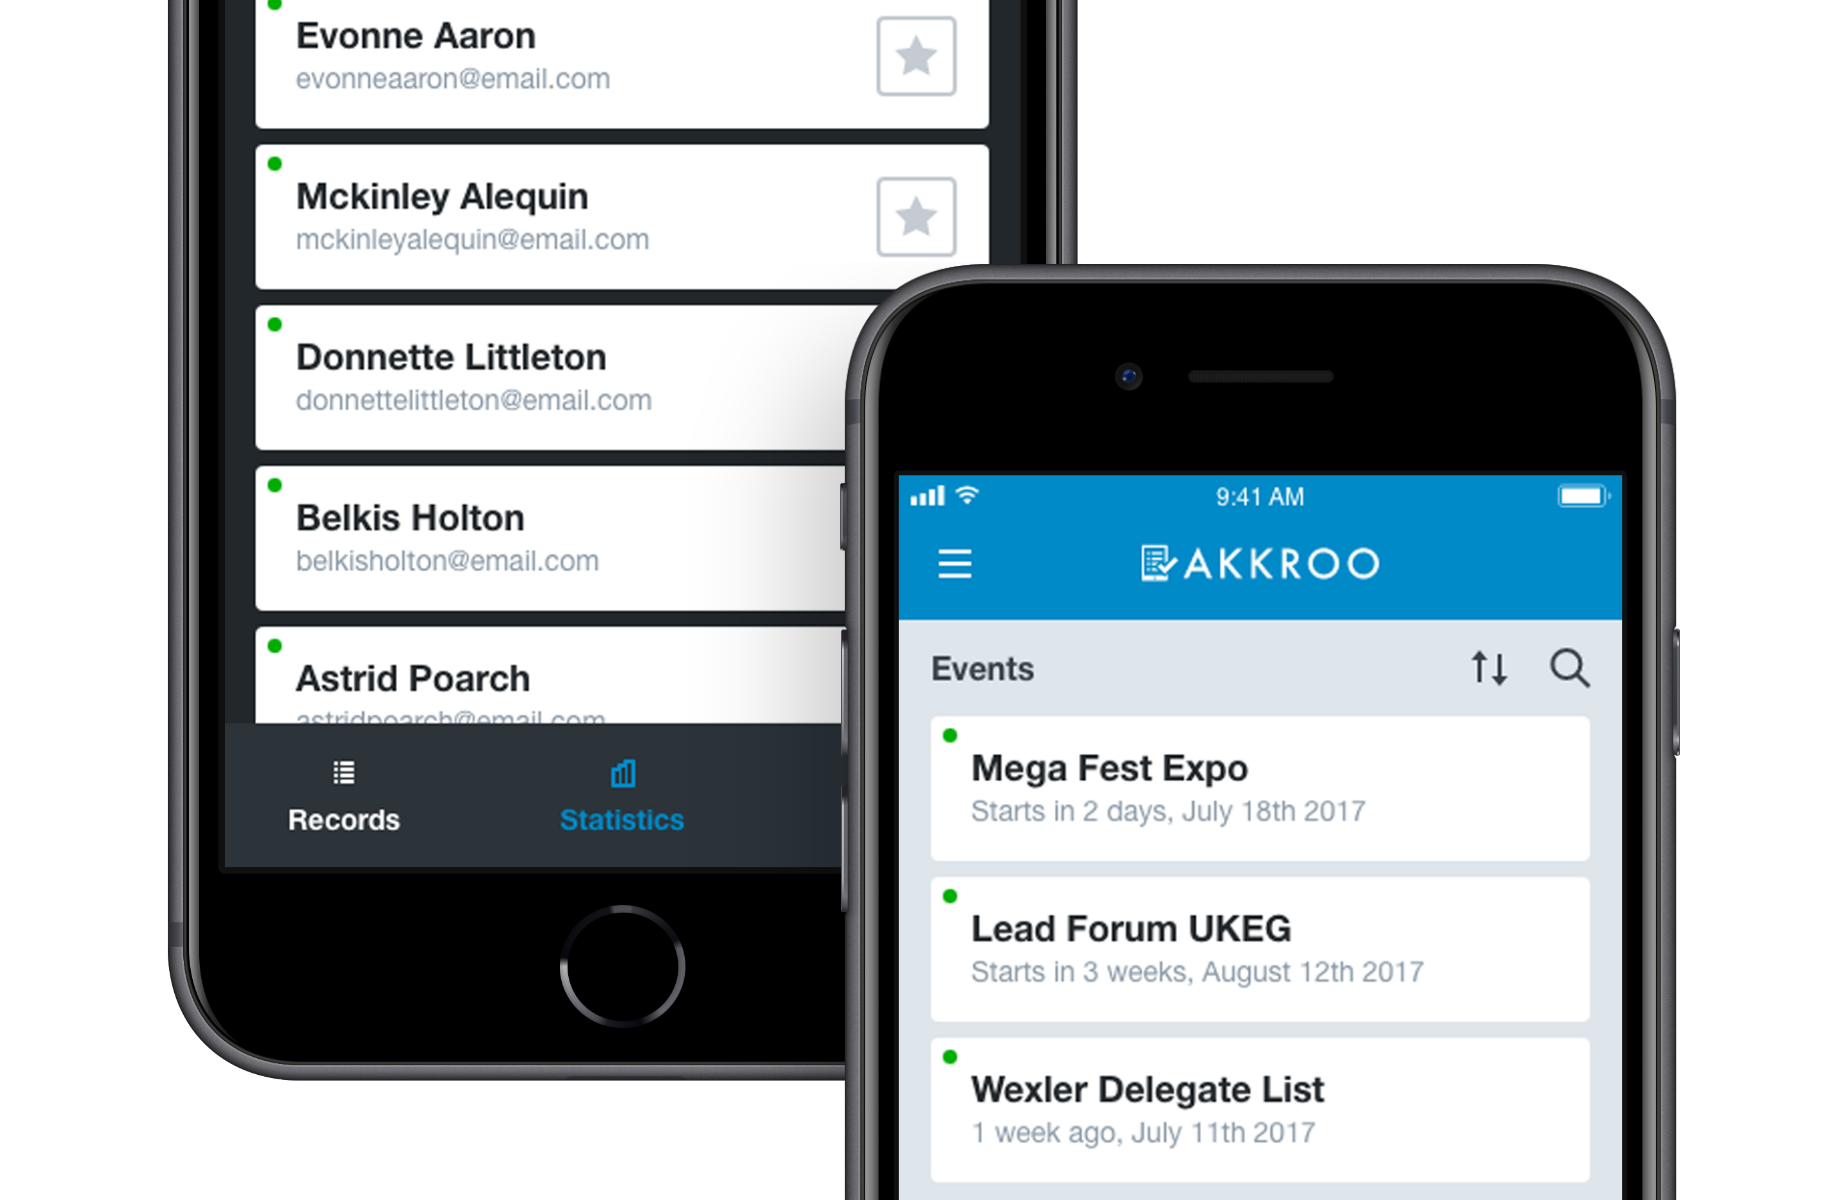 Two devices showing the user inteface for badge scanning in the Akkroo app